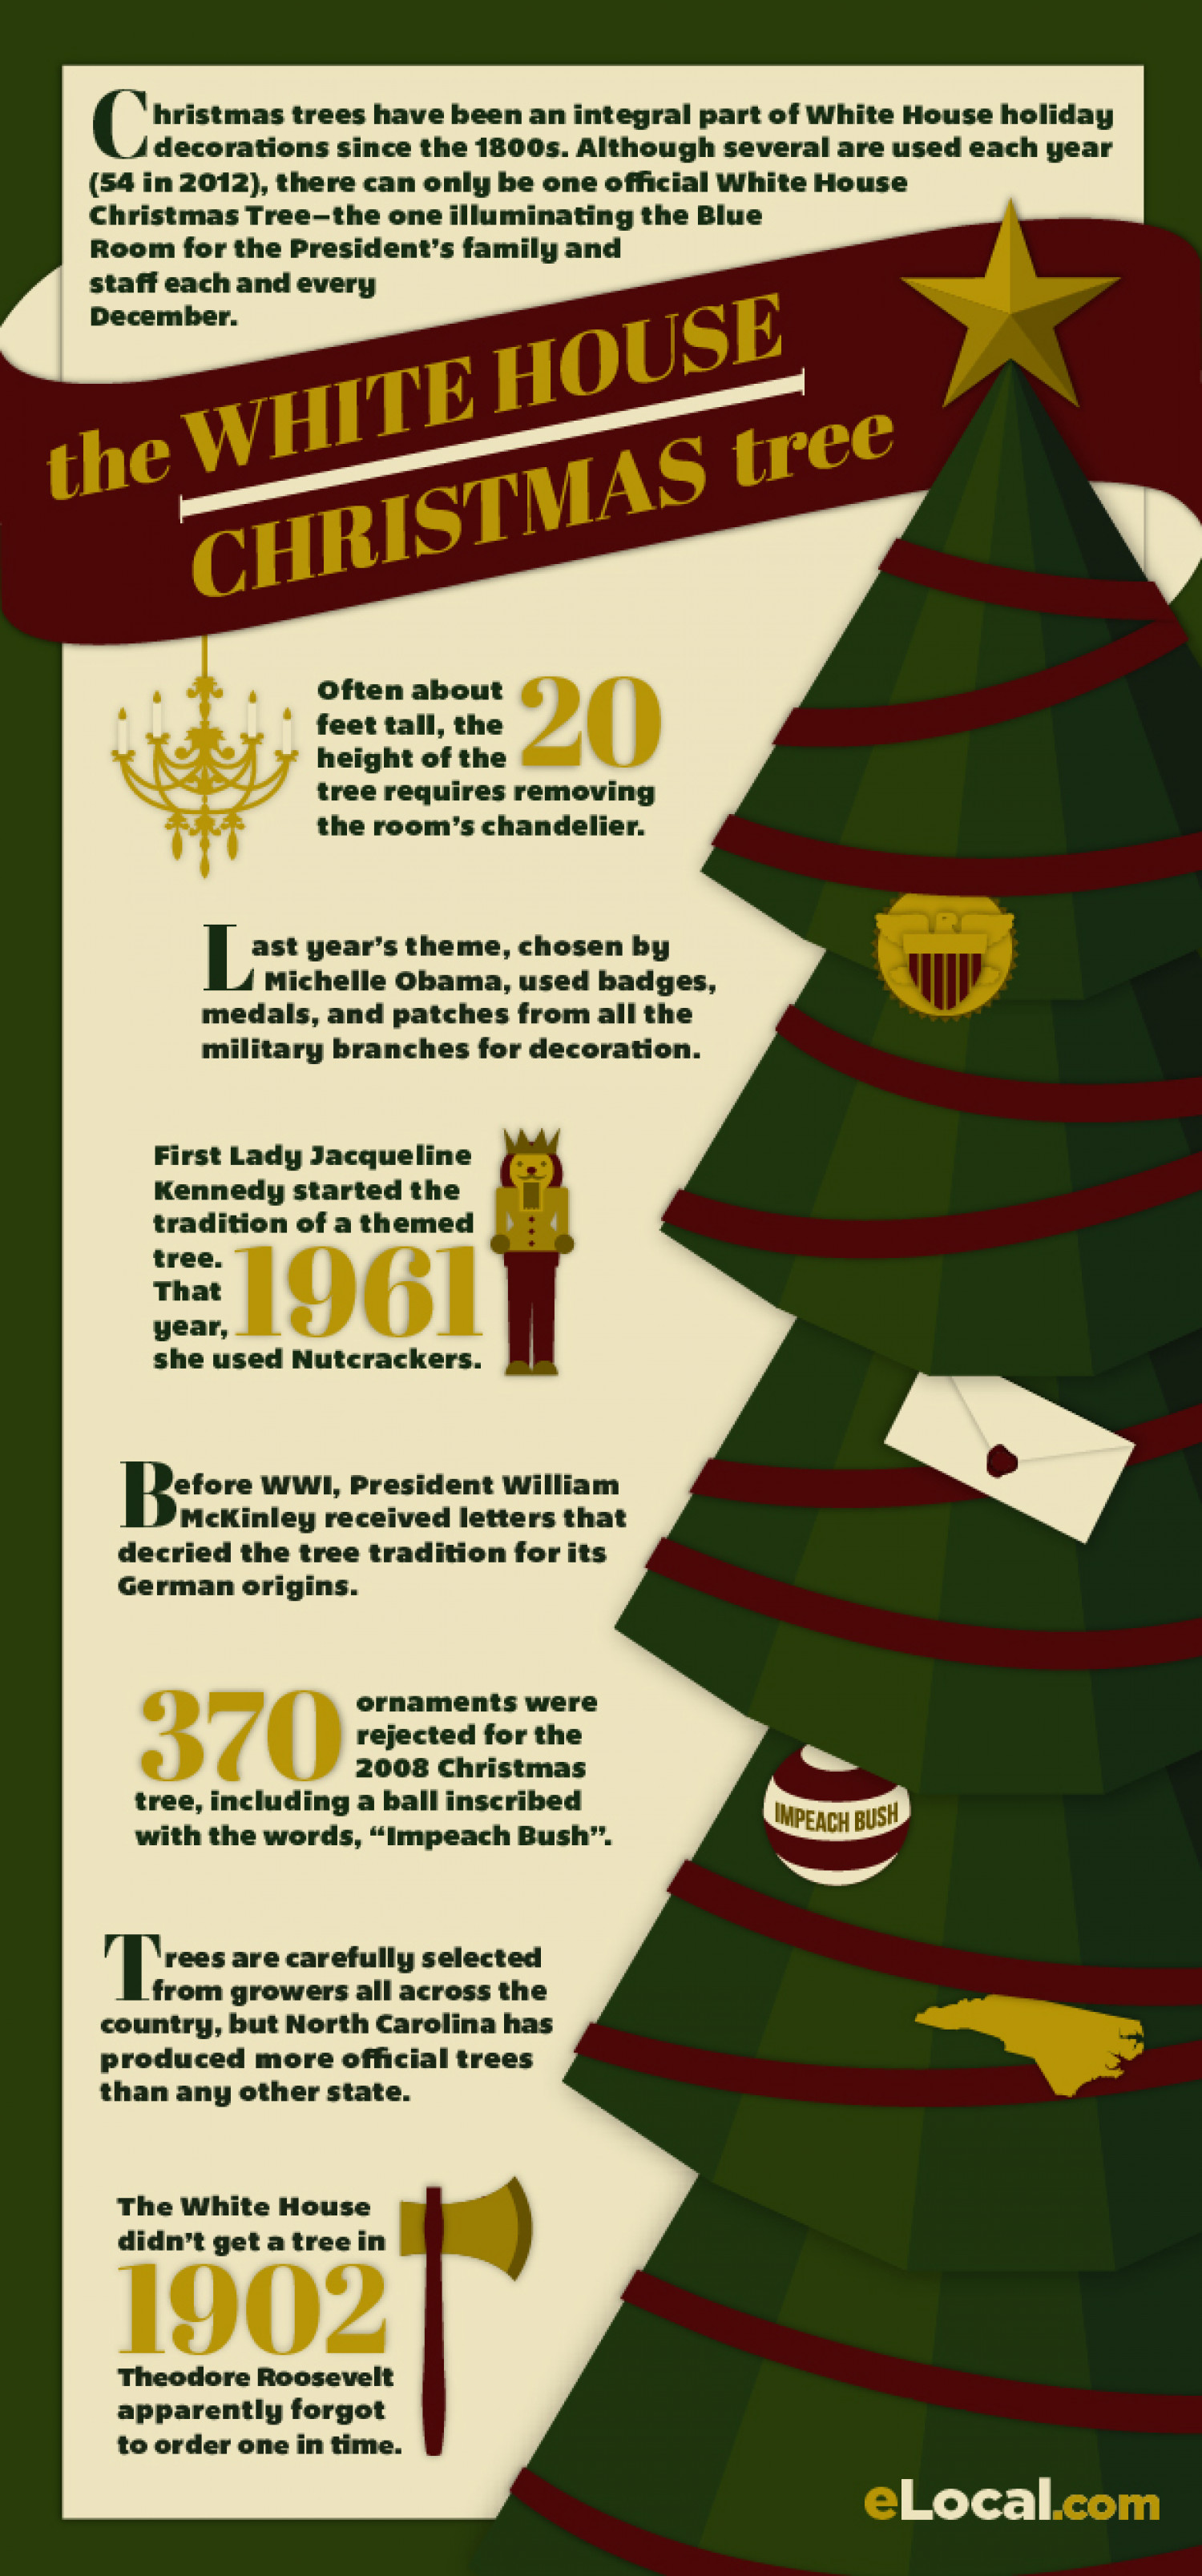 The History of the White House Christmas Tree Infographic